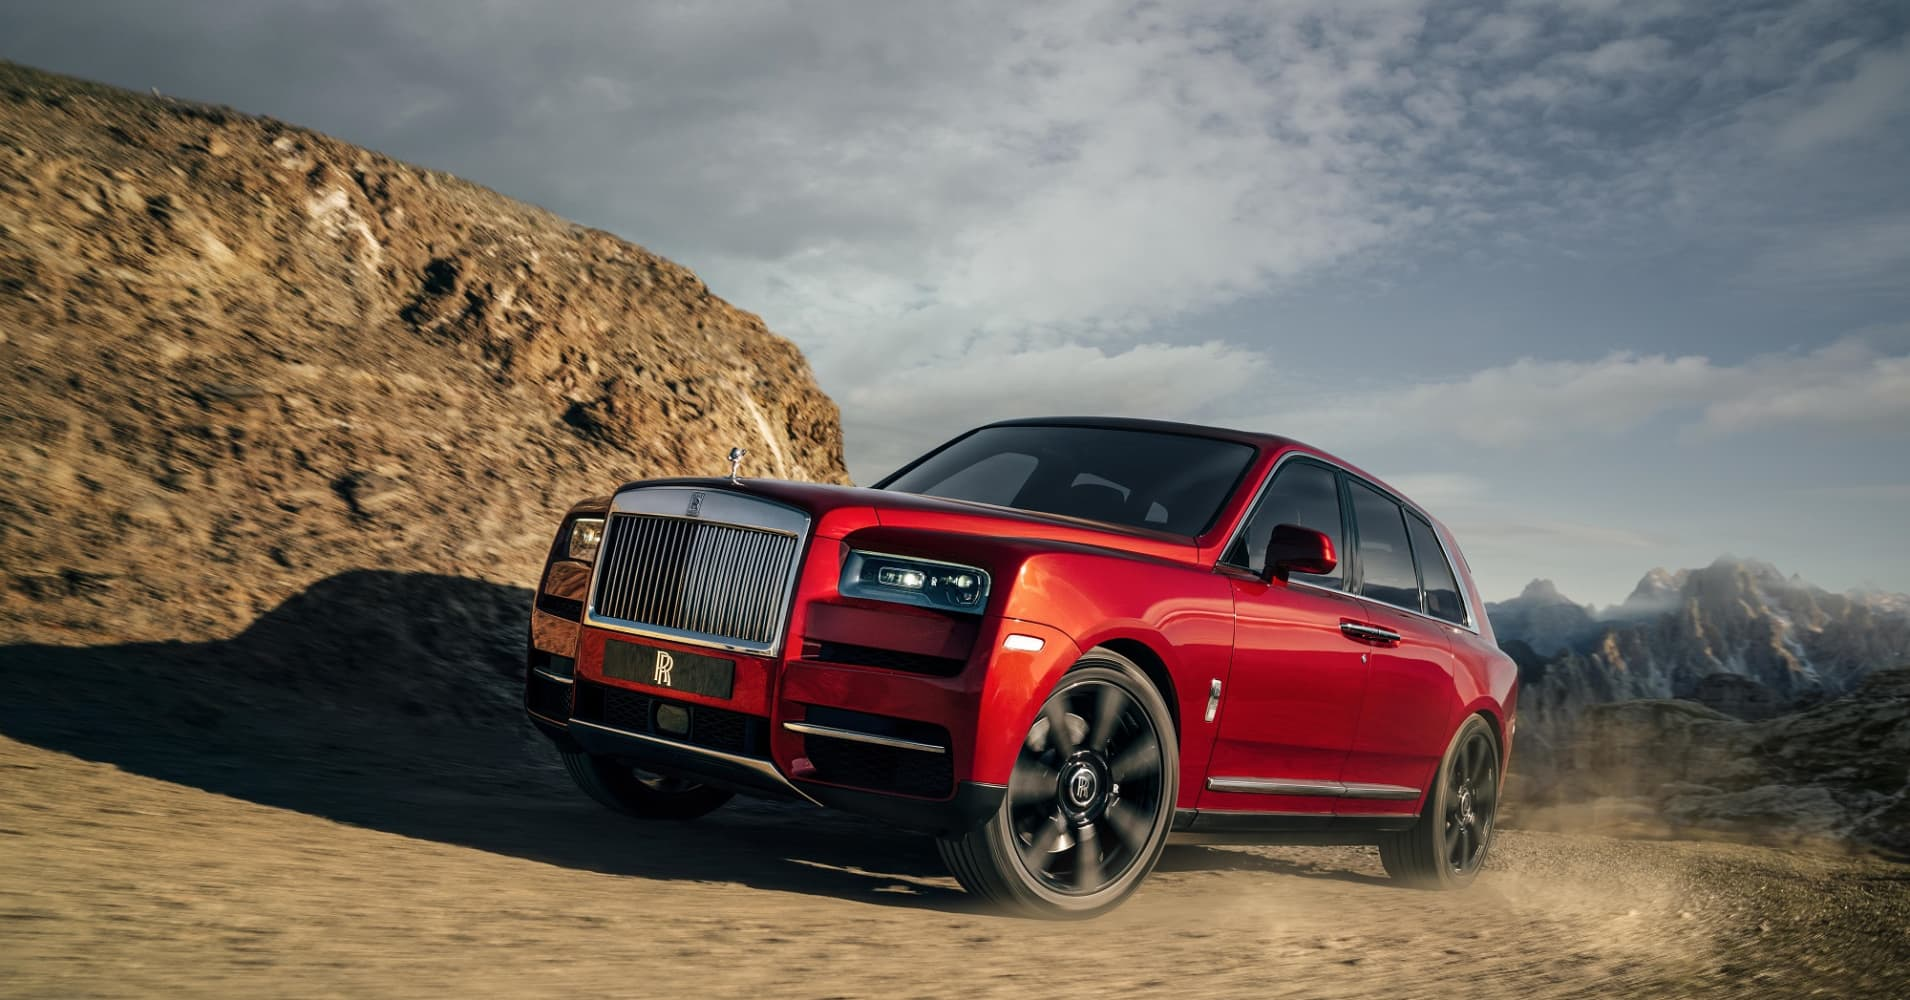 Photos: Cullinan is Rolls-Royce's first SUV